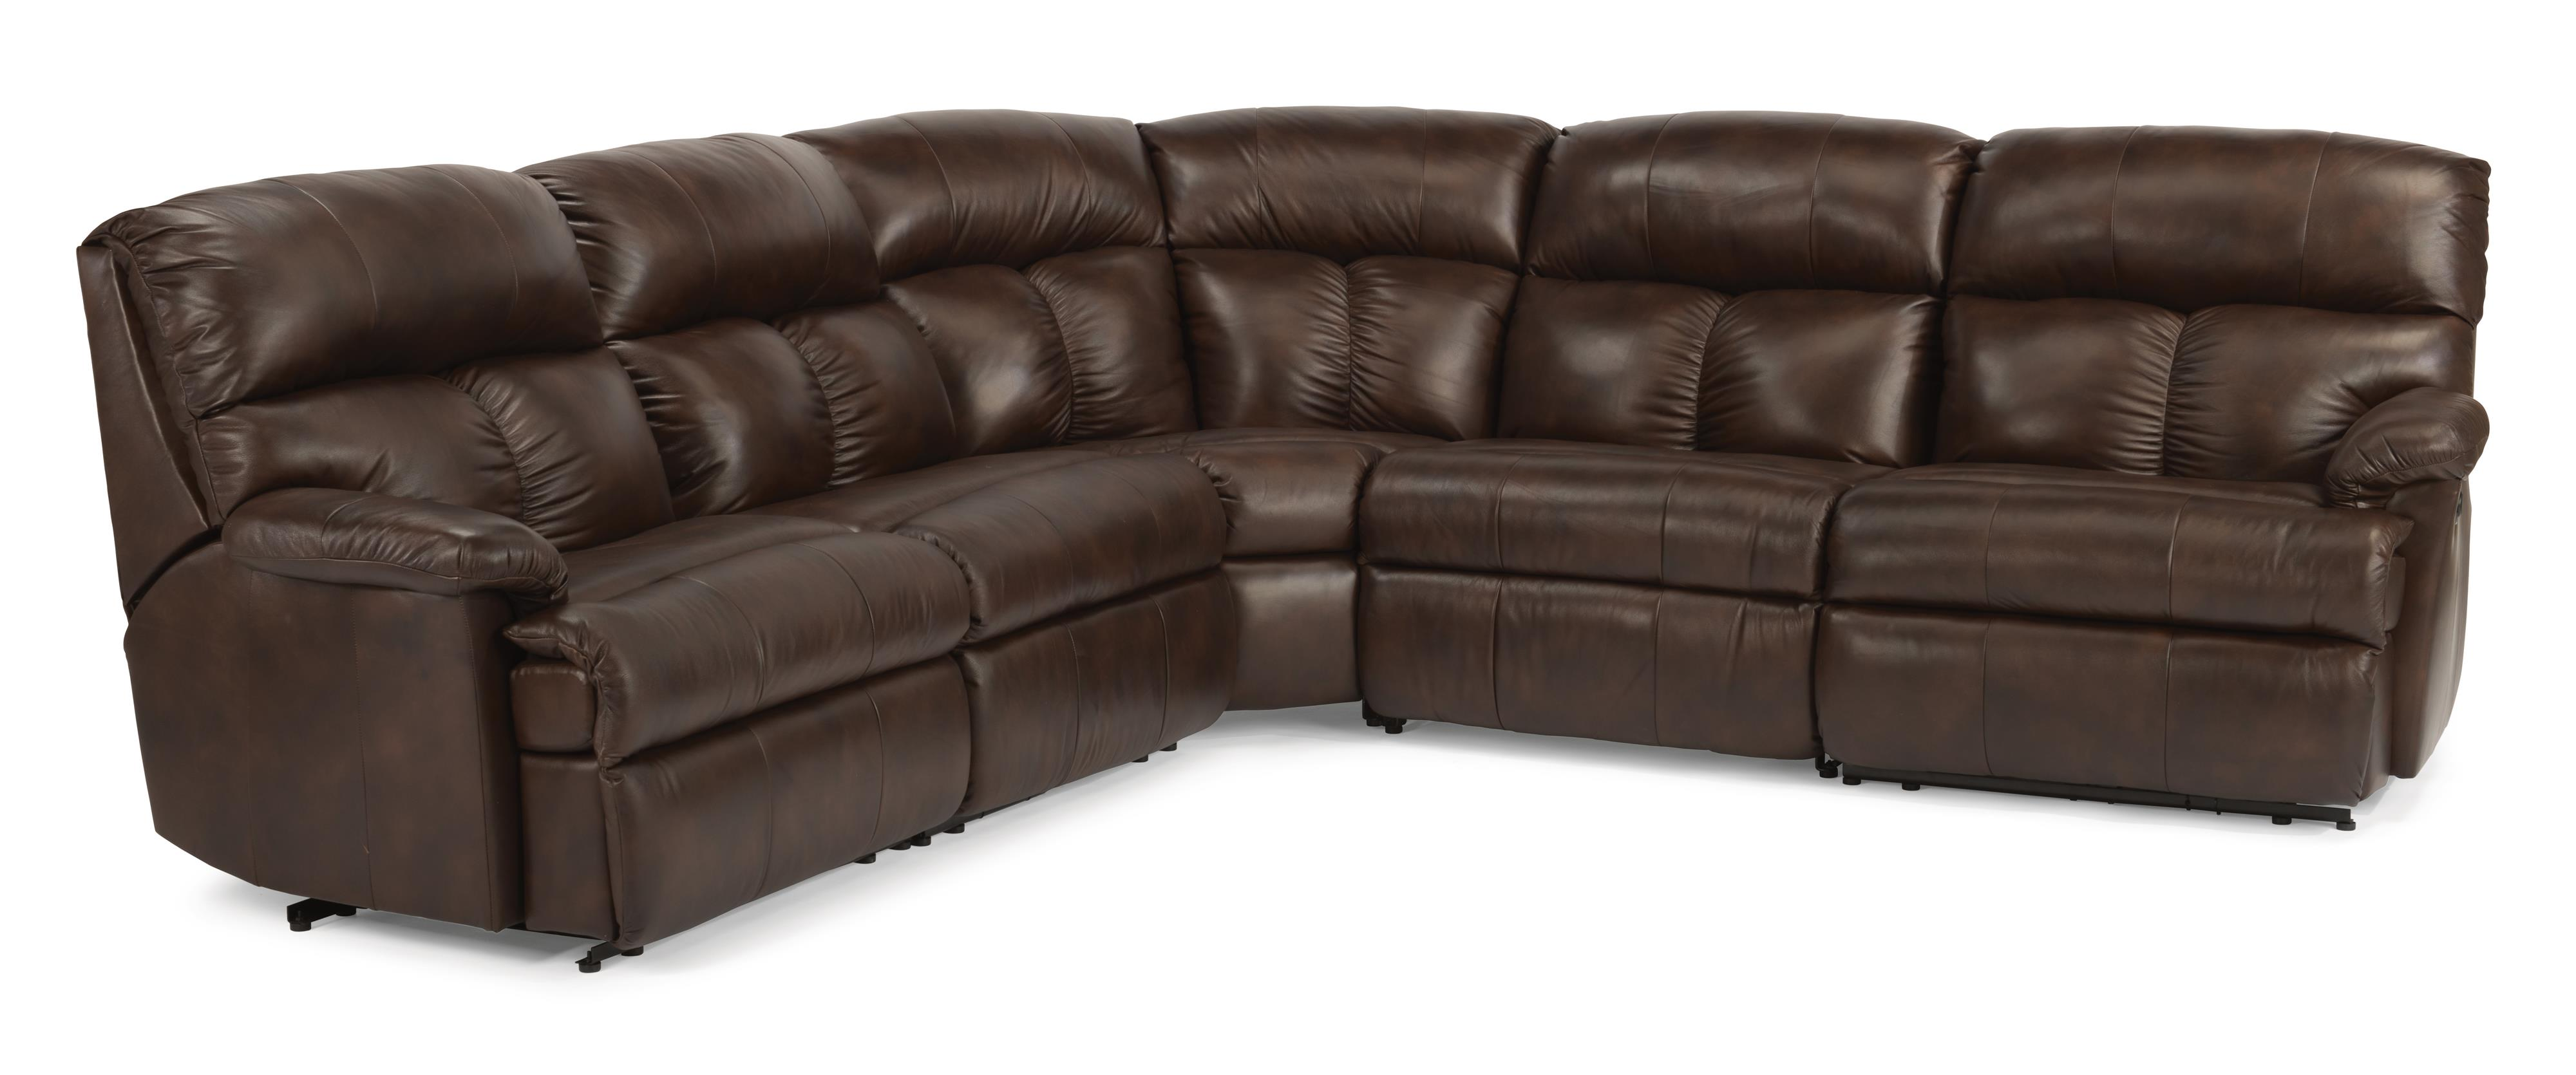 Flexsteel Triton Reclining Sofa Sectional Dunk Amp Bright